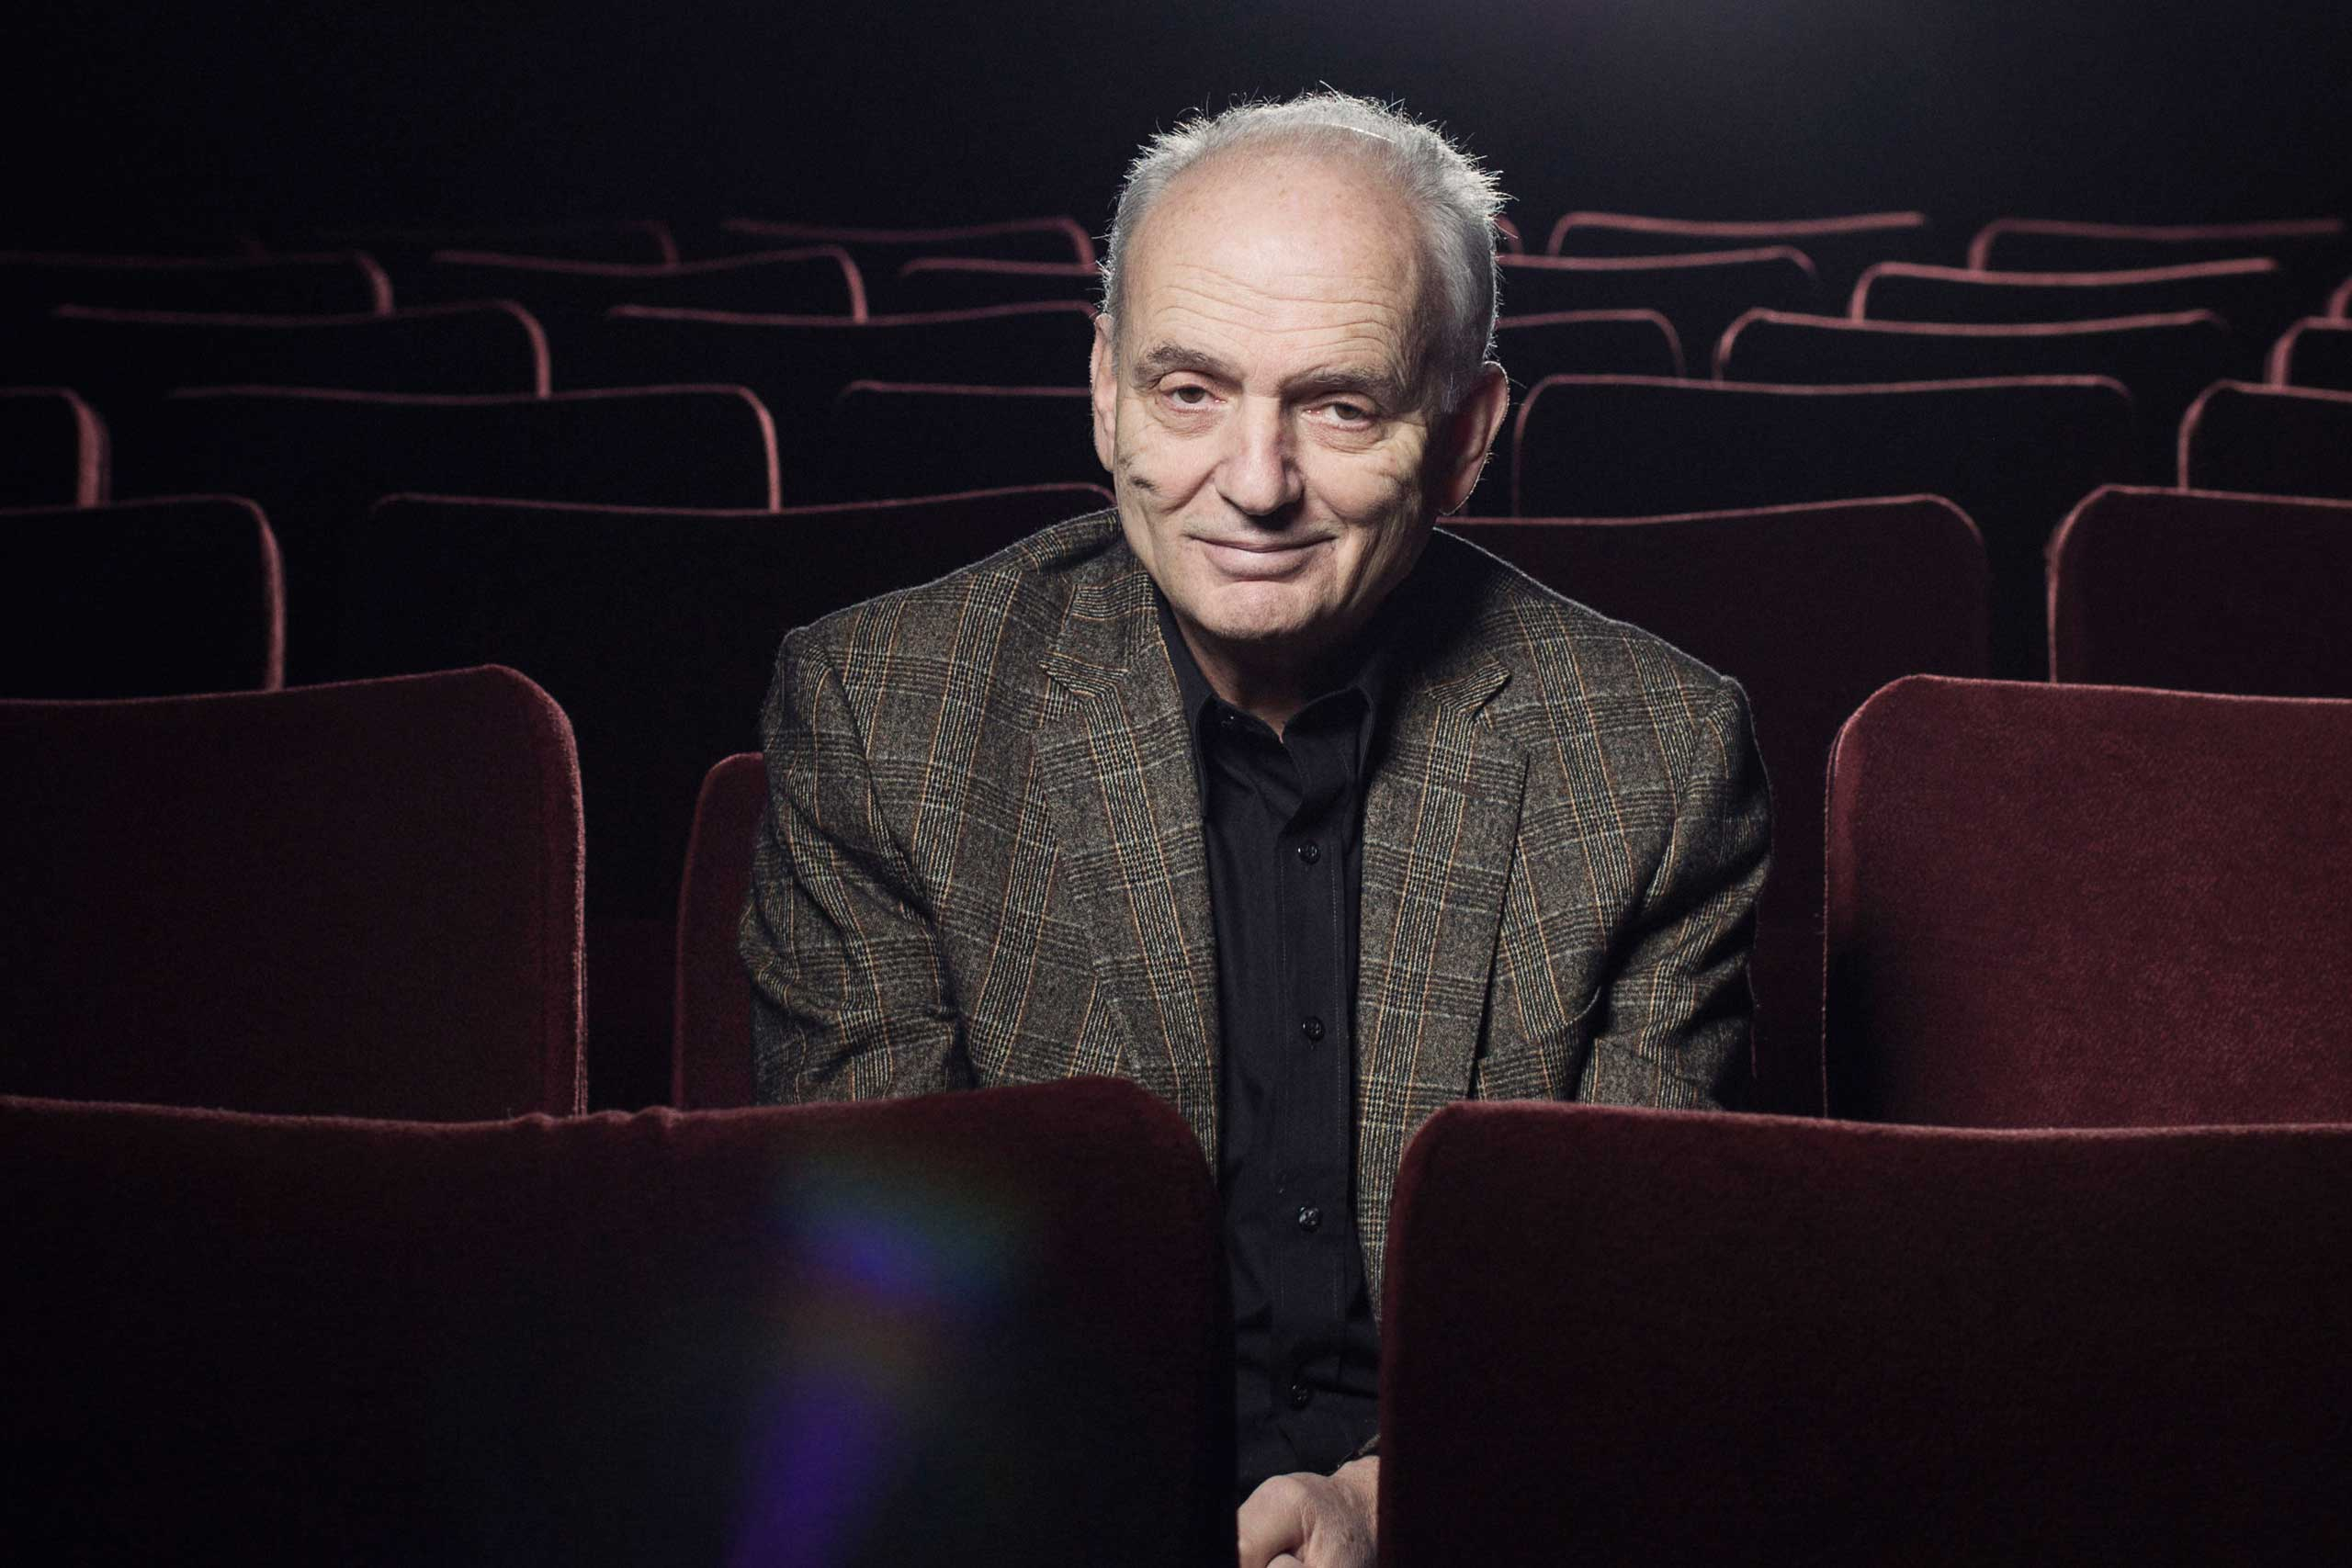 This Dec. 3, 2012 photo shows director and producer David Chase in New York.